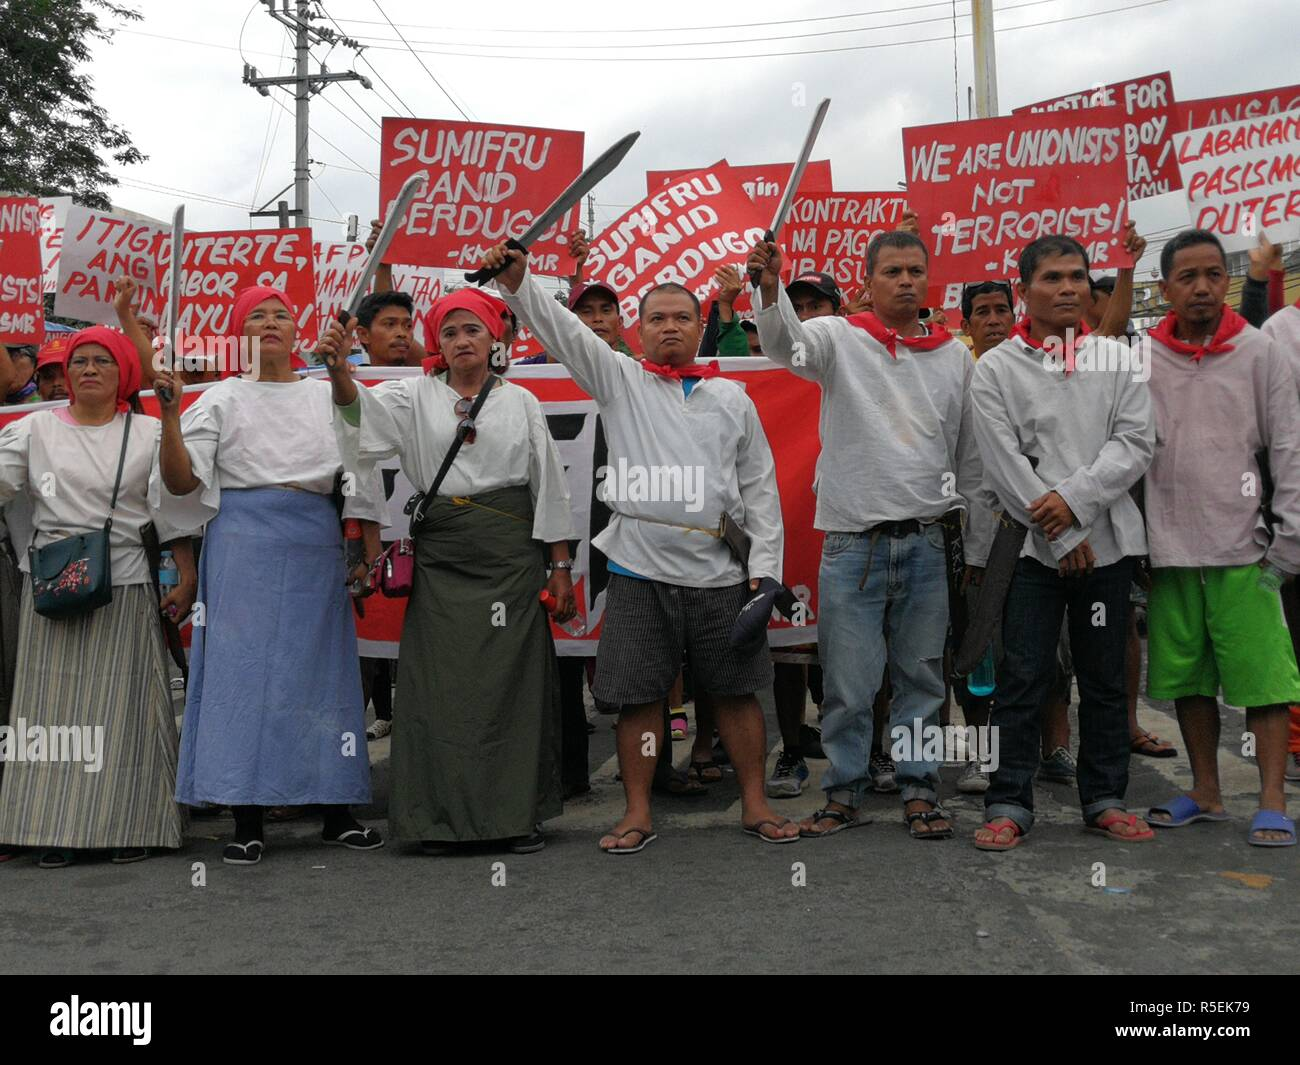 Manila, Philippines. 30th Nov, 2018. Members of various militant groups gathered together to celebrate Bonifacio Day by conducting a protests against Duterte's administration. The protesters brought along with them effigies of President Rodrigo Duterte, Chinese President Xi Jinping and US President Donald Trump in which they burn during the culmination of their rally. Credit: Sherbien Dacalanio/Pacific Press/Alamy Live News - Stock Image